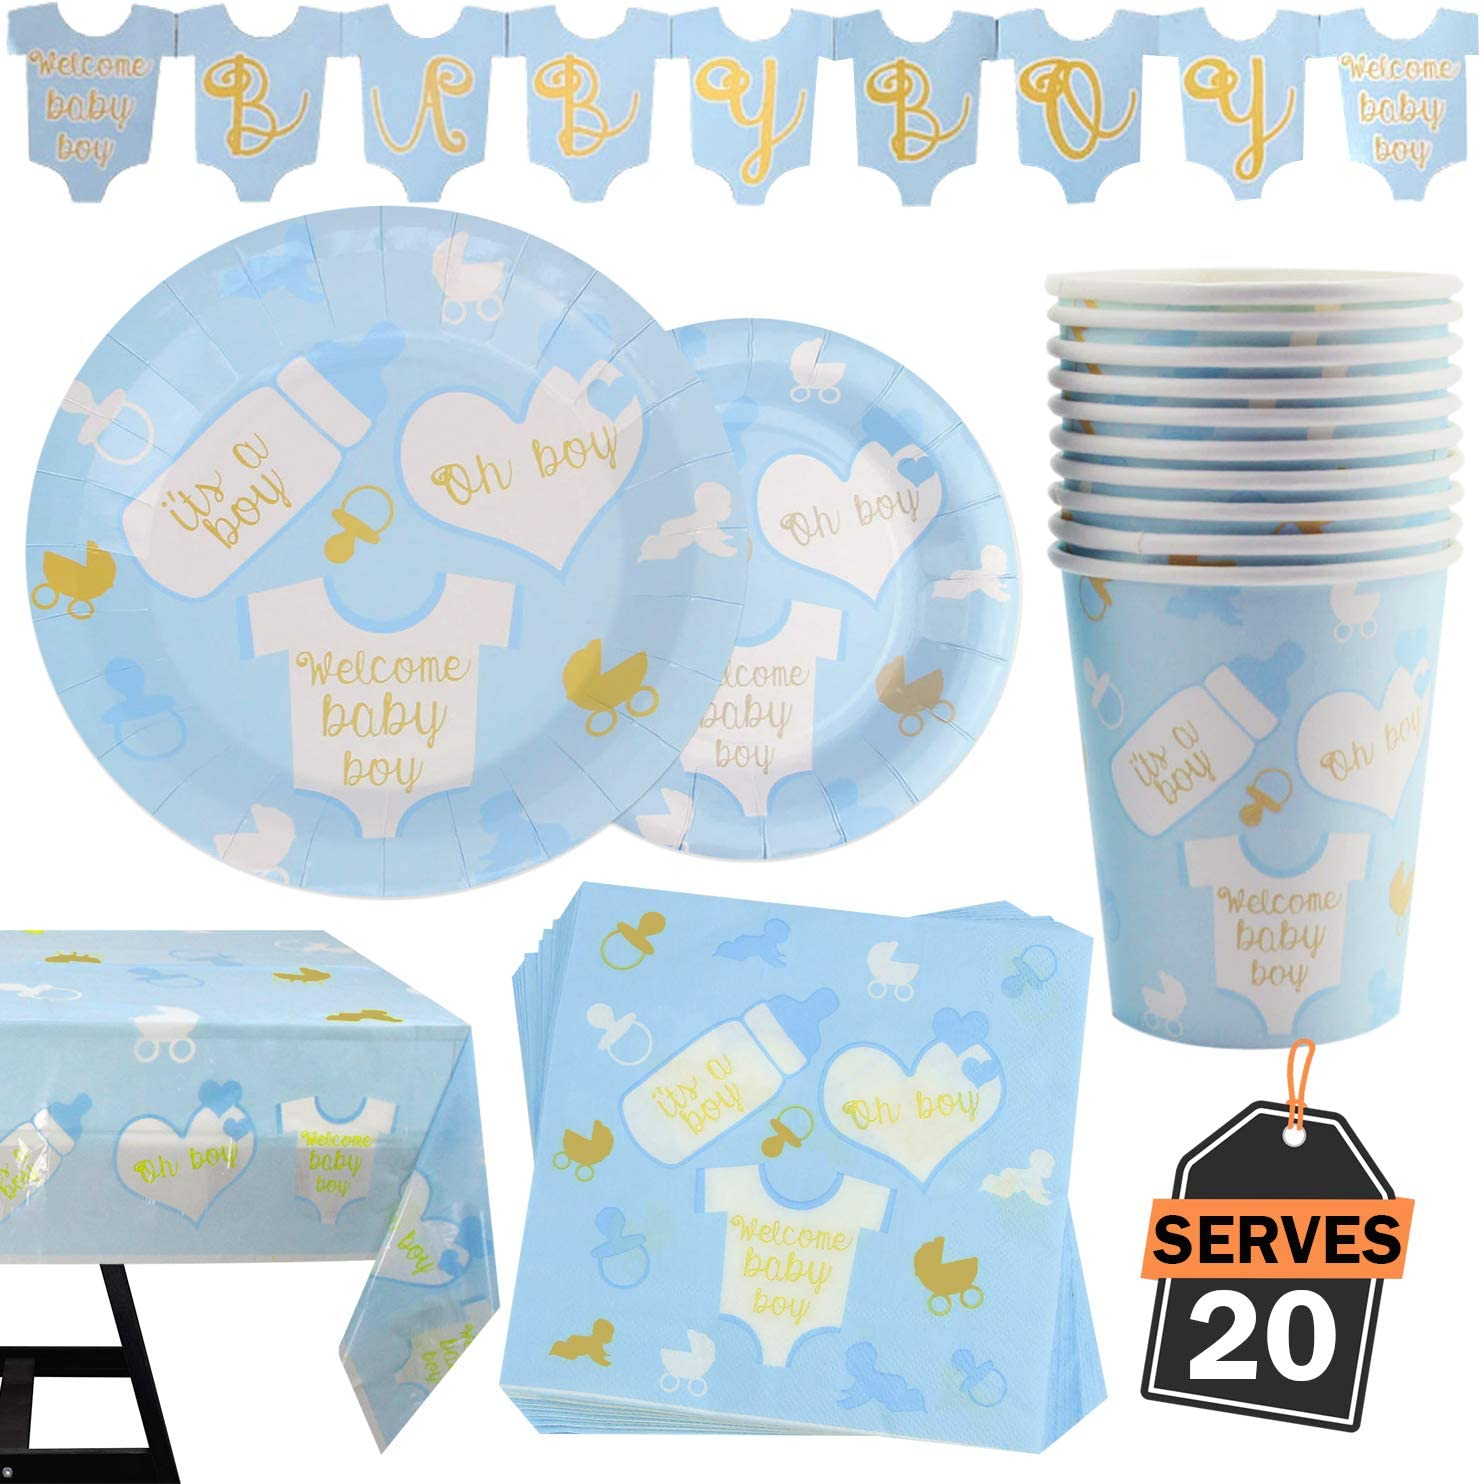 Table Napkins Serves 20 82 Piece Baby Boy Shower Party Supplies Set Including Plates Tablecloth and Banner Cups